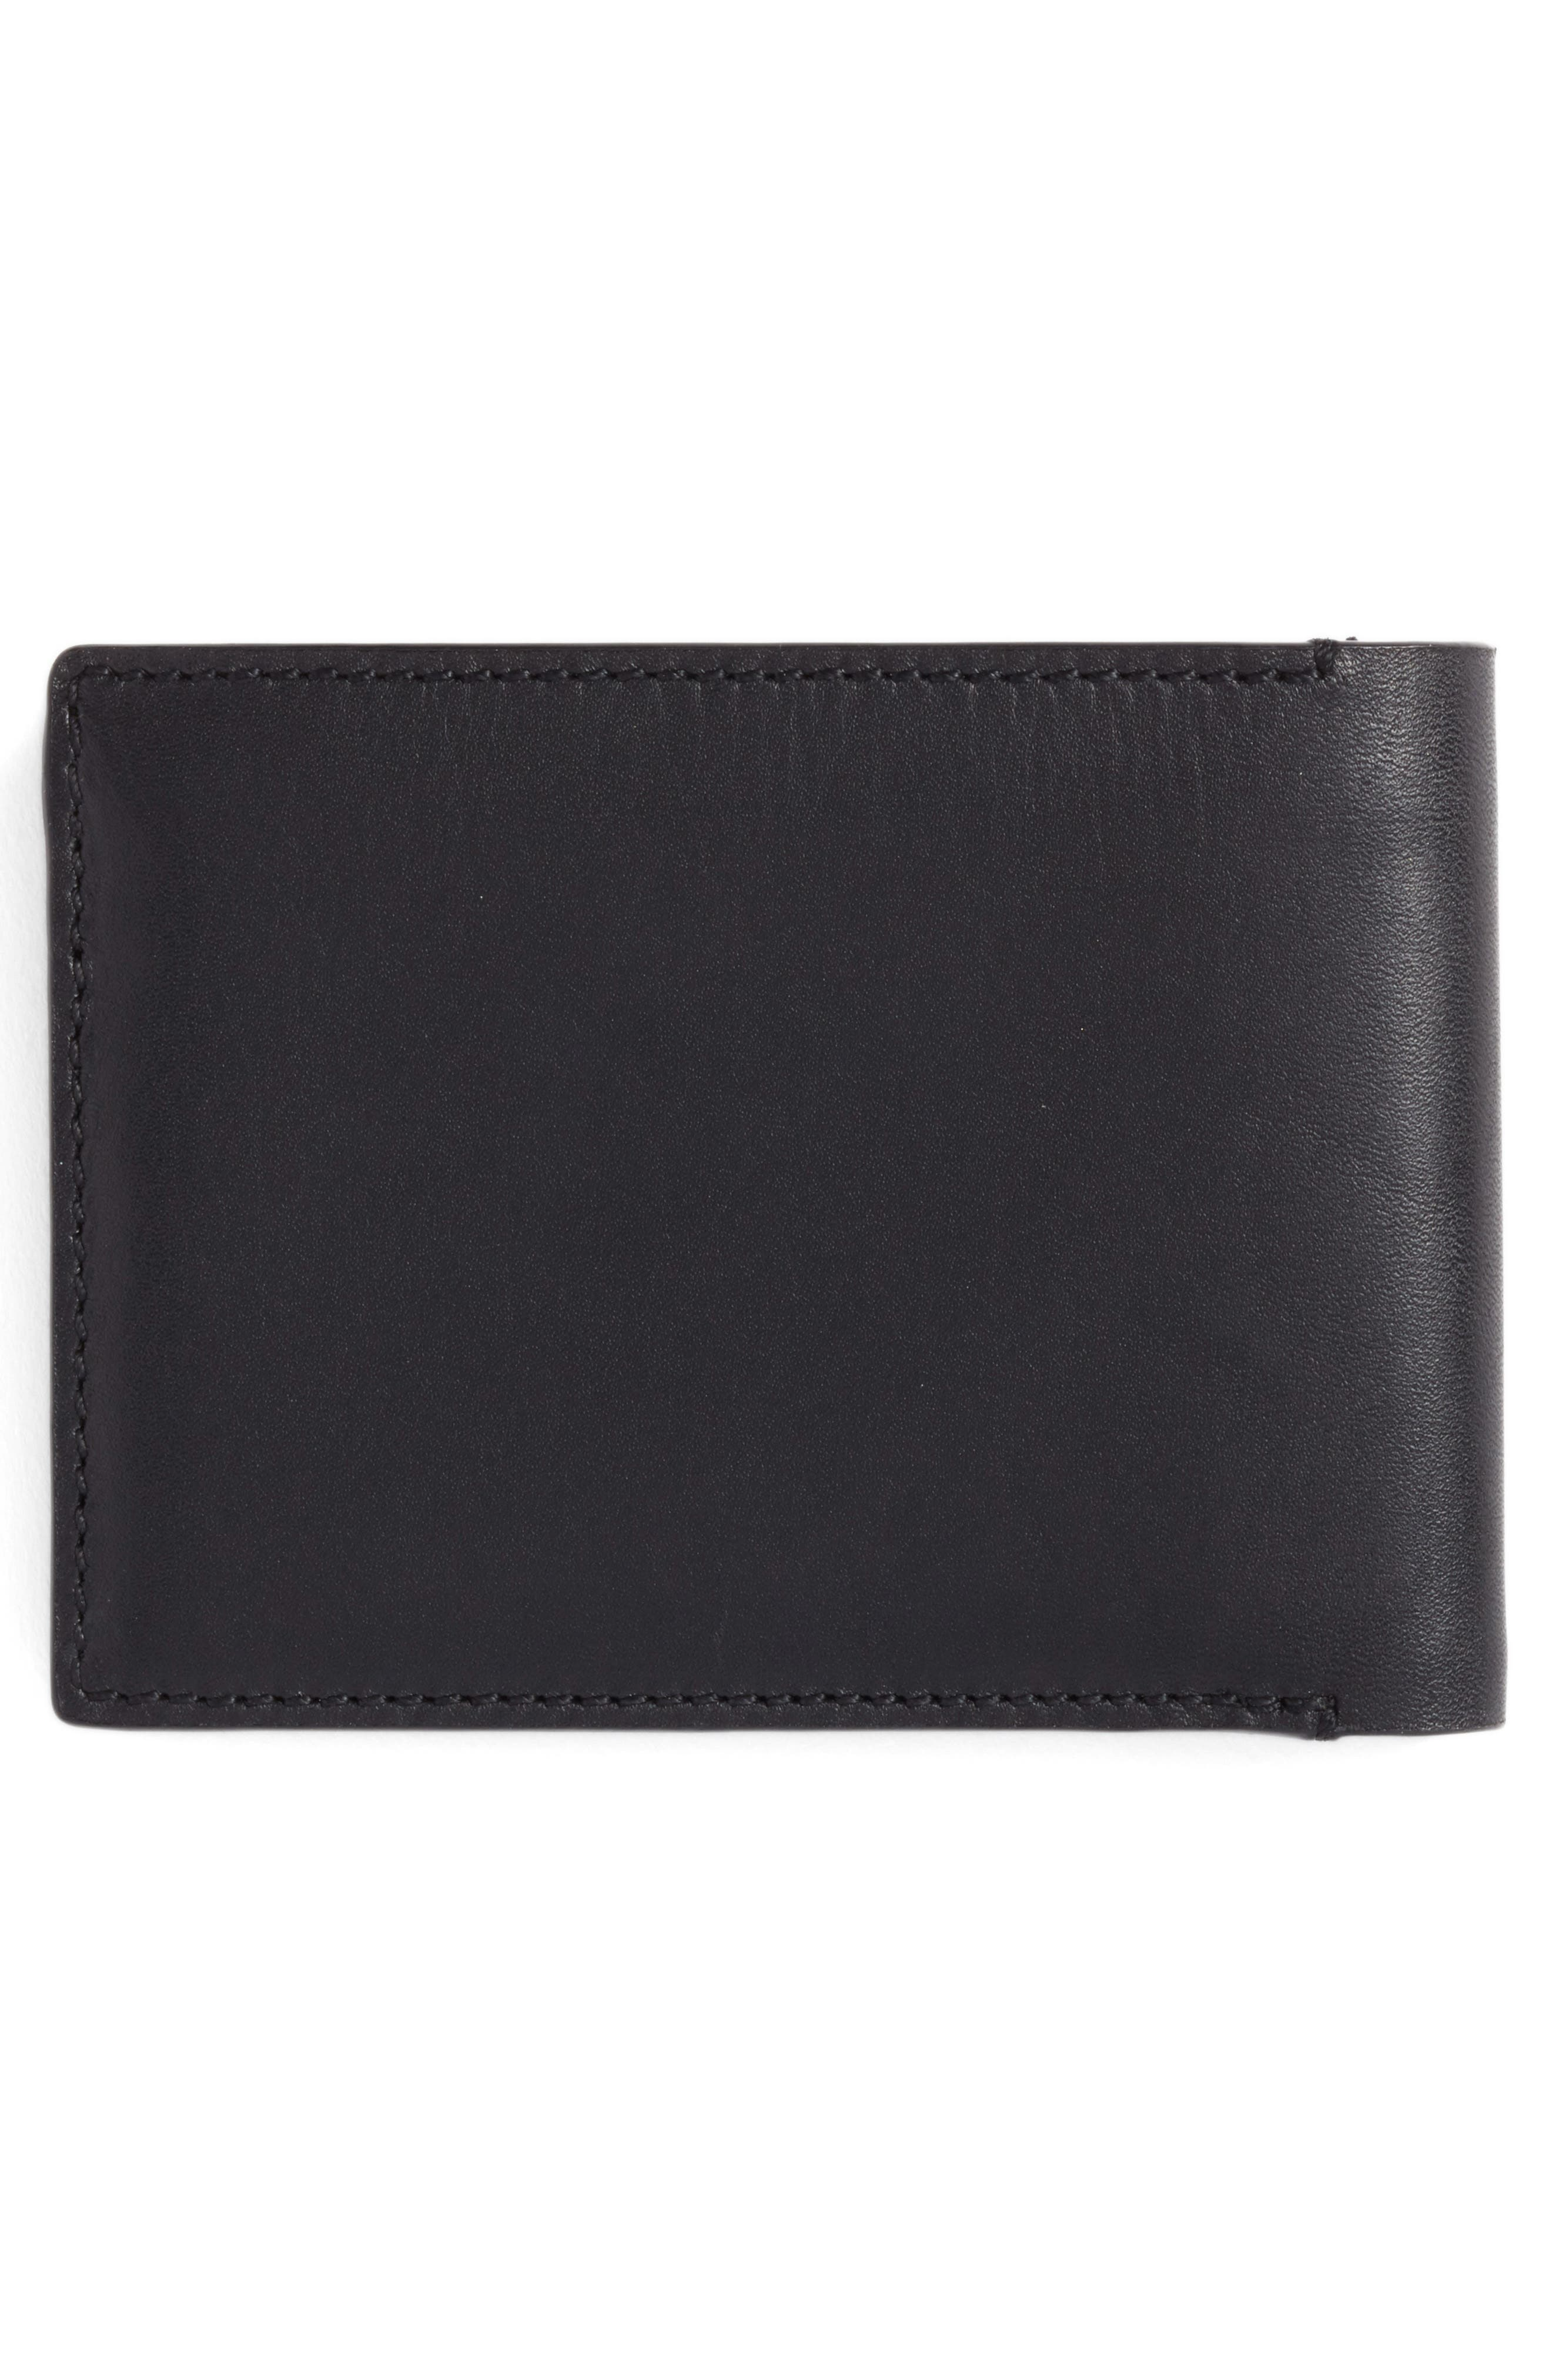 Bifold Leather Wallet with Pass Case,                             Alternate thumbnail 3, color,                             Black